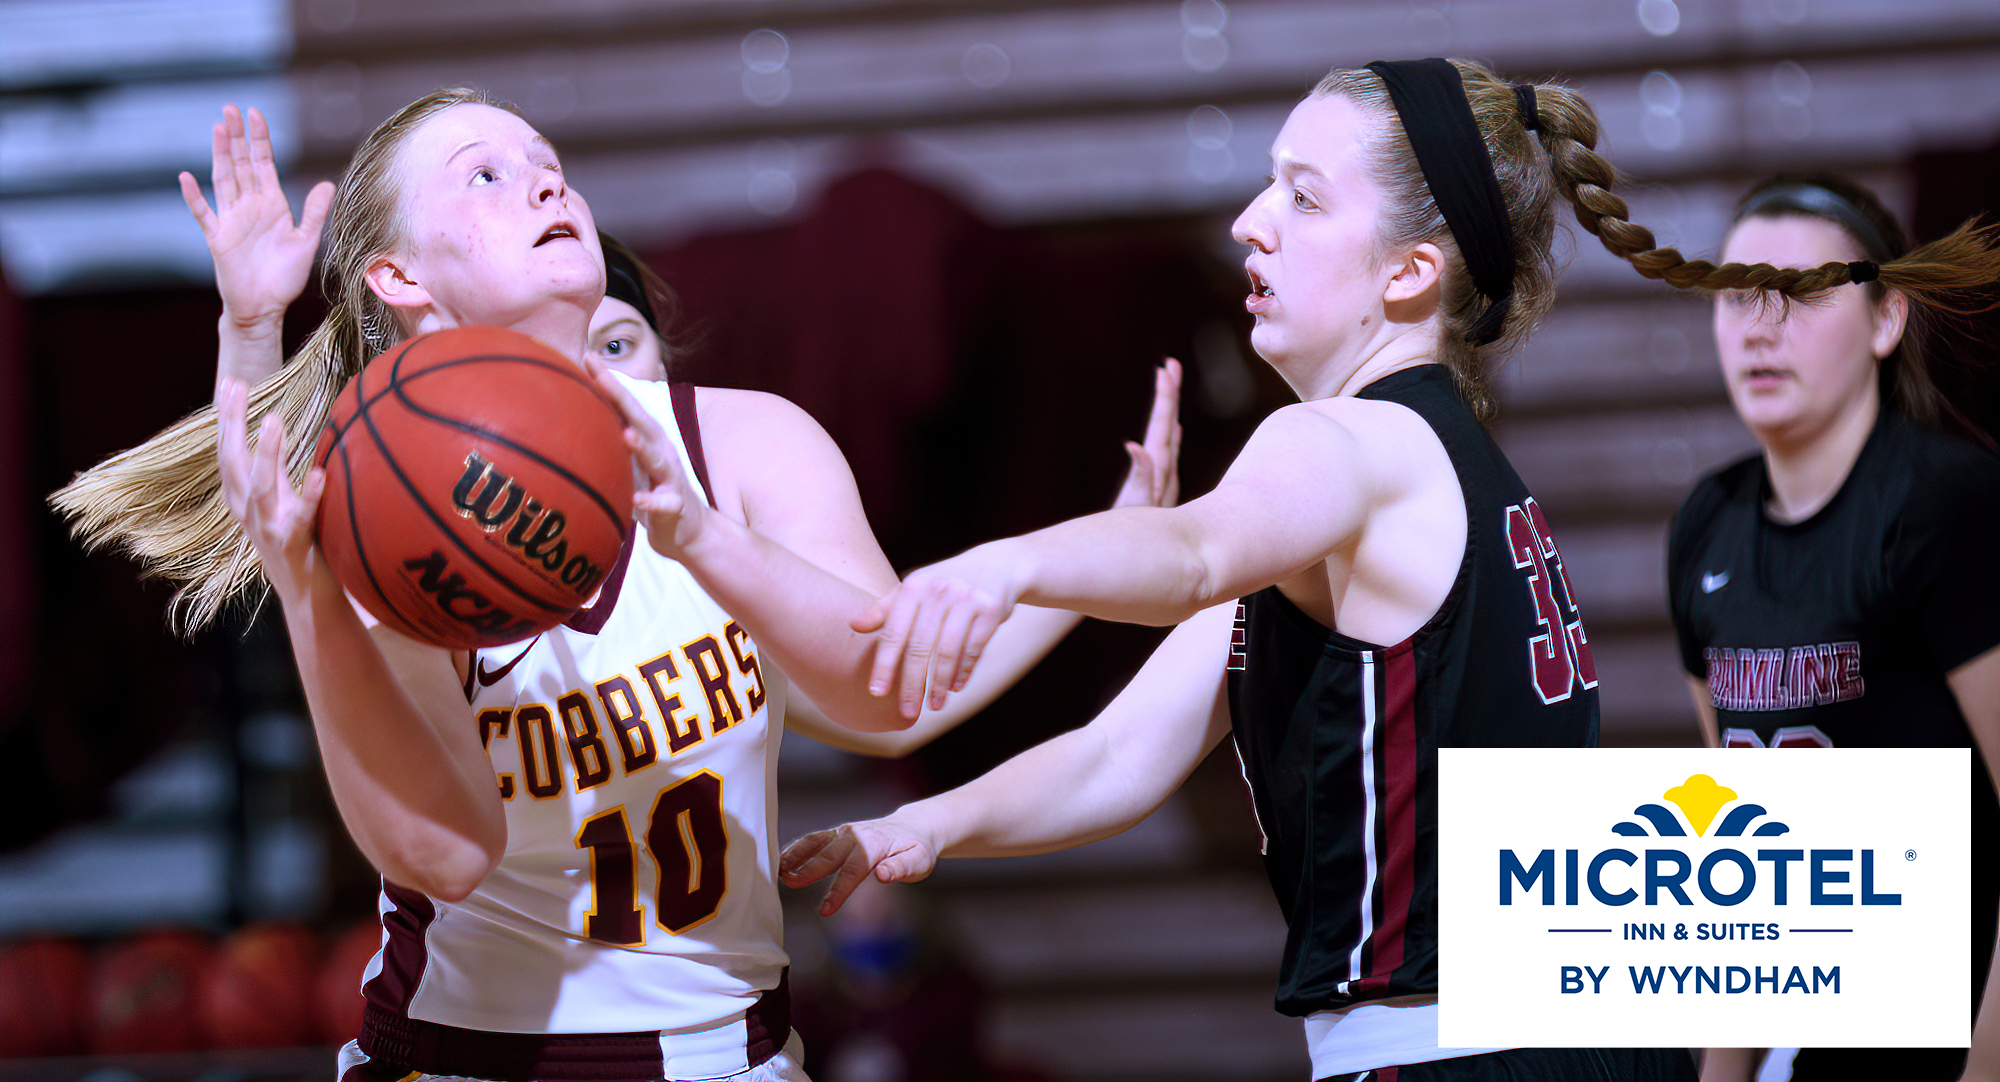 Senior Elizabeth Birkemeyer drives to the basket during the second half of the Cobbers' game with Hamline. She finished with a career-high 21 points on the night.